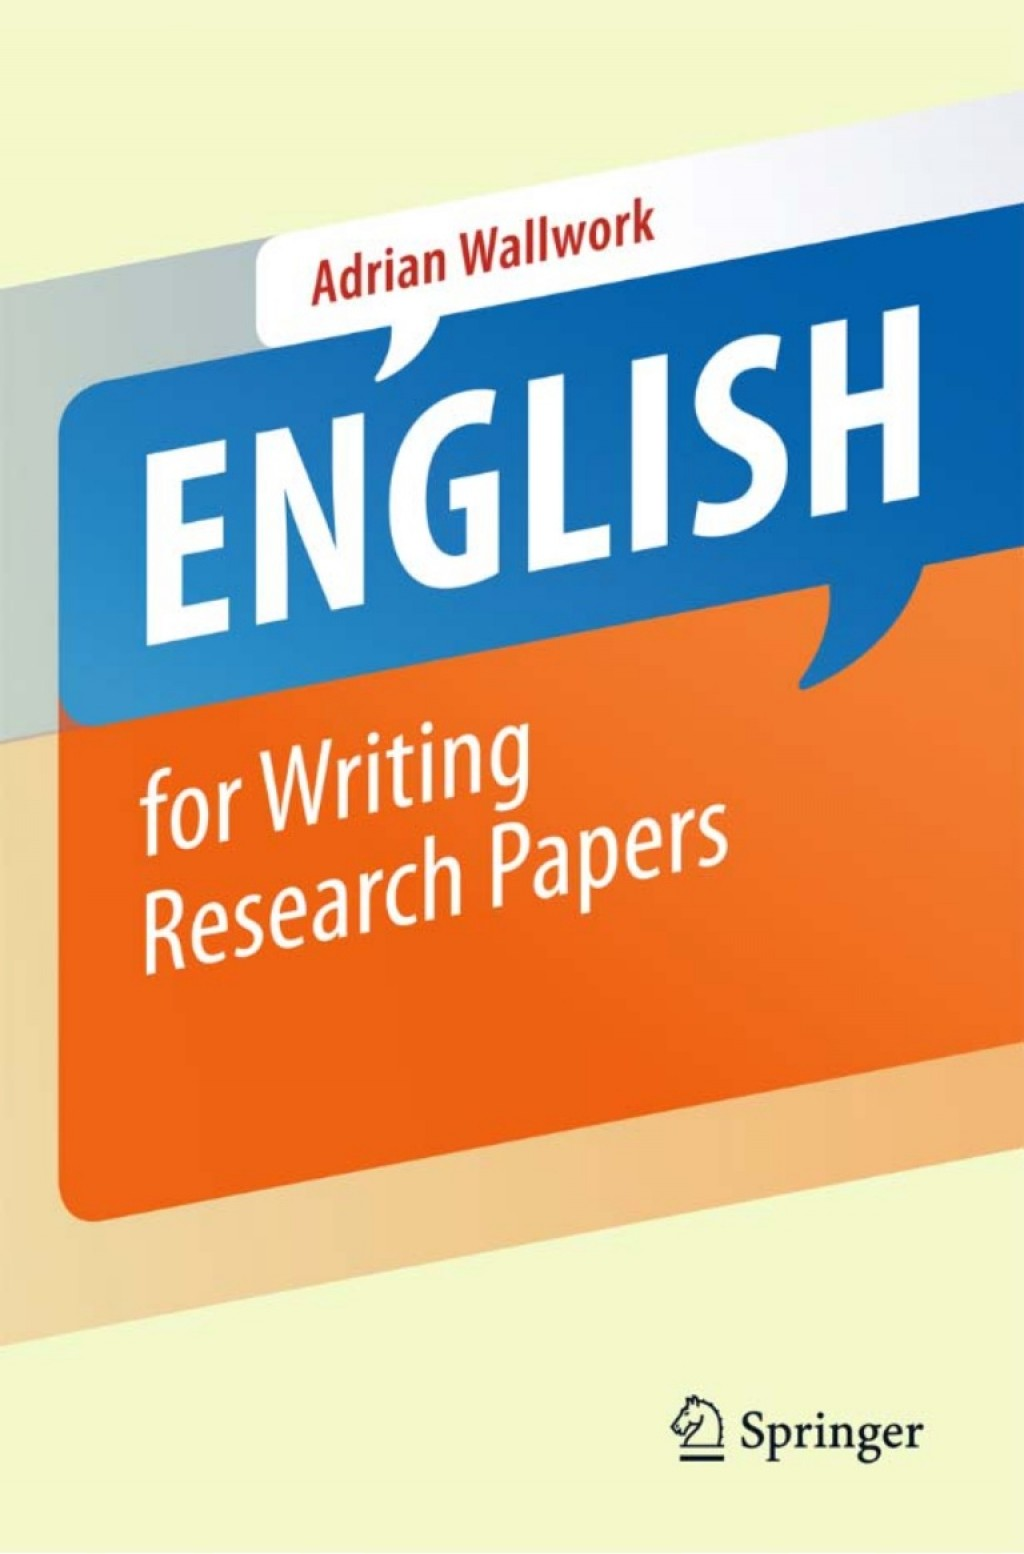 002 Research Paper Englishforwritingresearchpapers Conversion Gate01 Thumbnail English For Writing Papers Awesome Springer Pdf Useful Phrases - Large